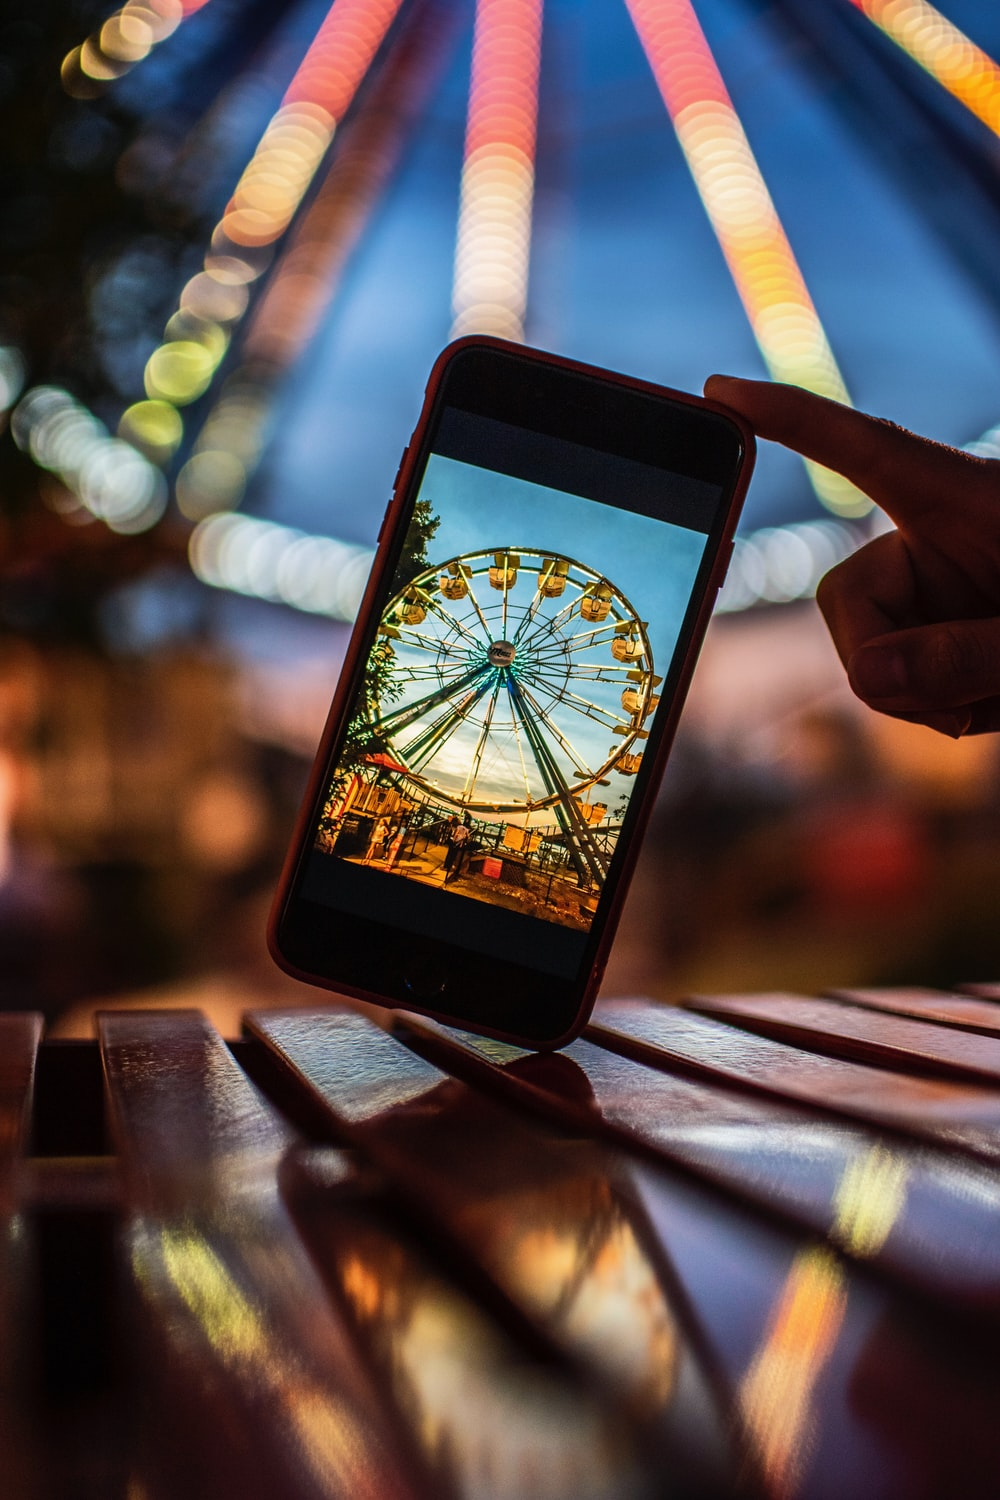 closeup photography of smartphone displaying ferris wheel